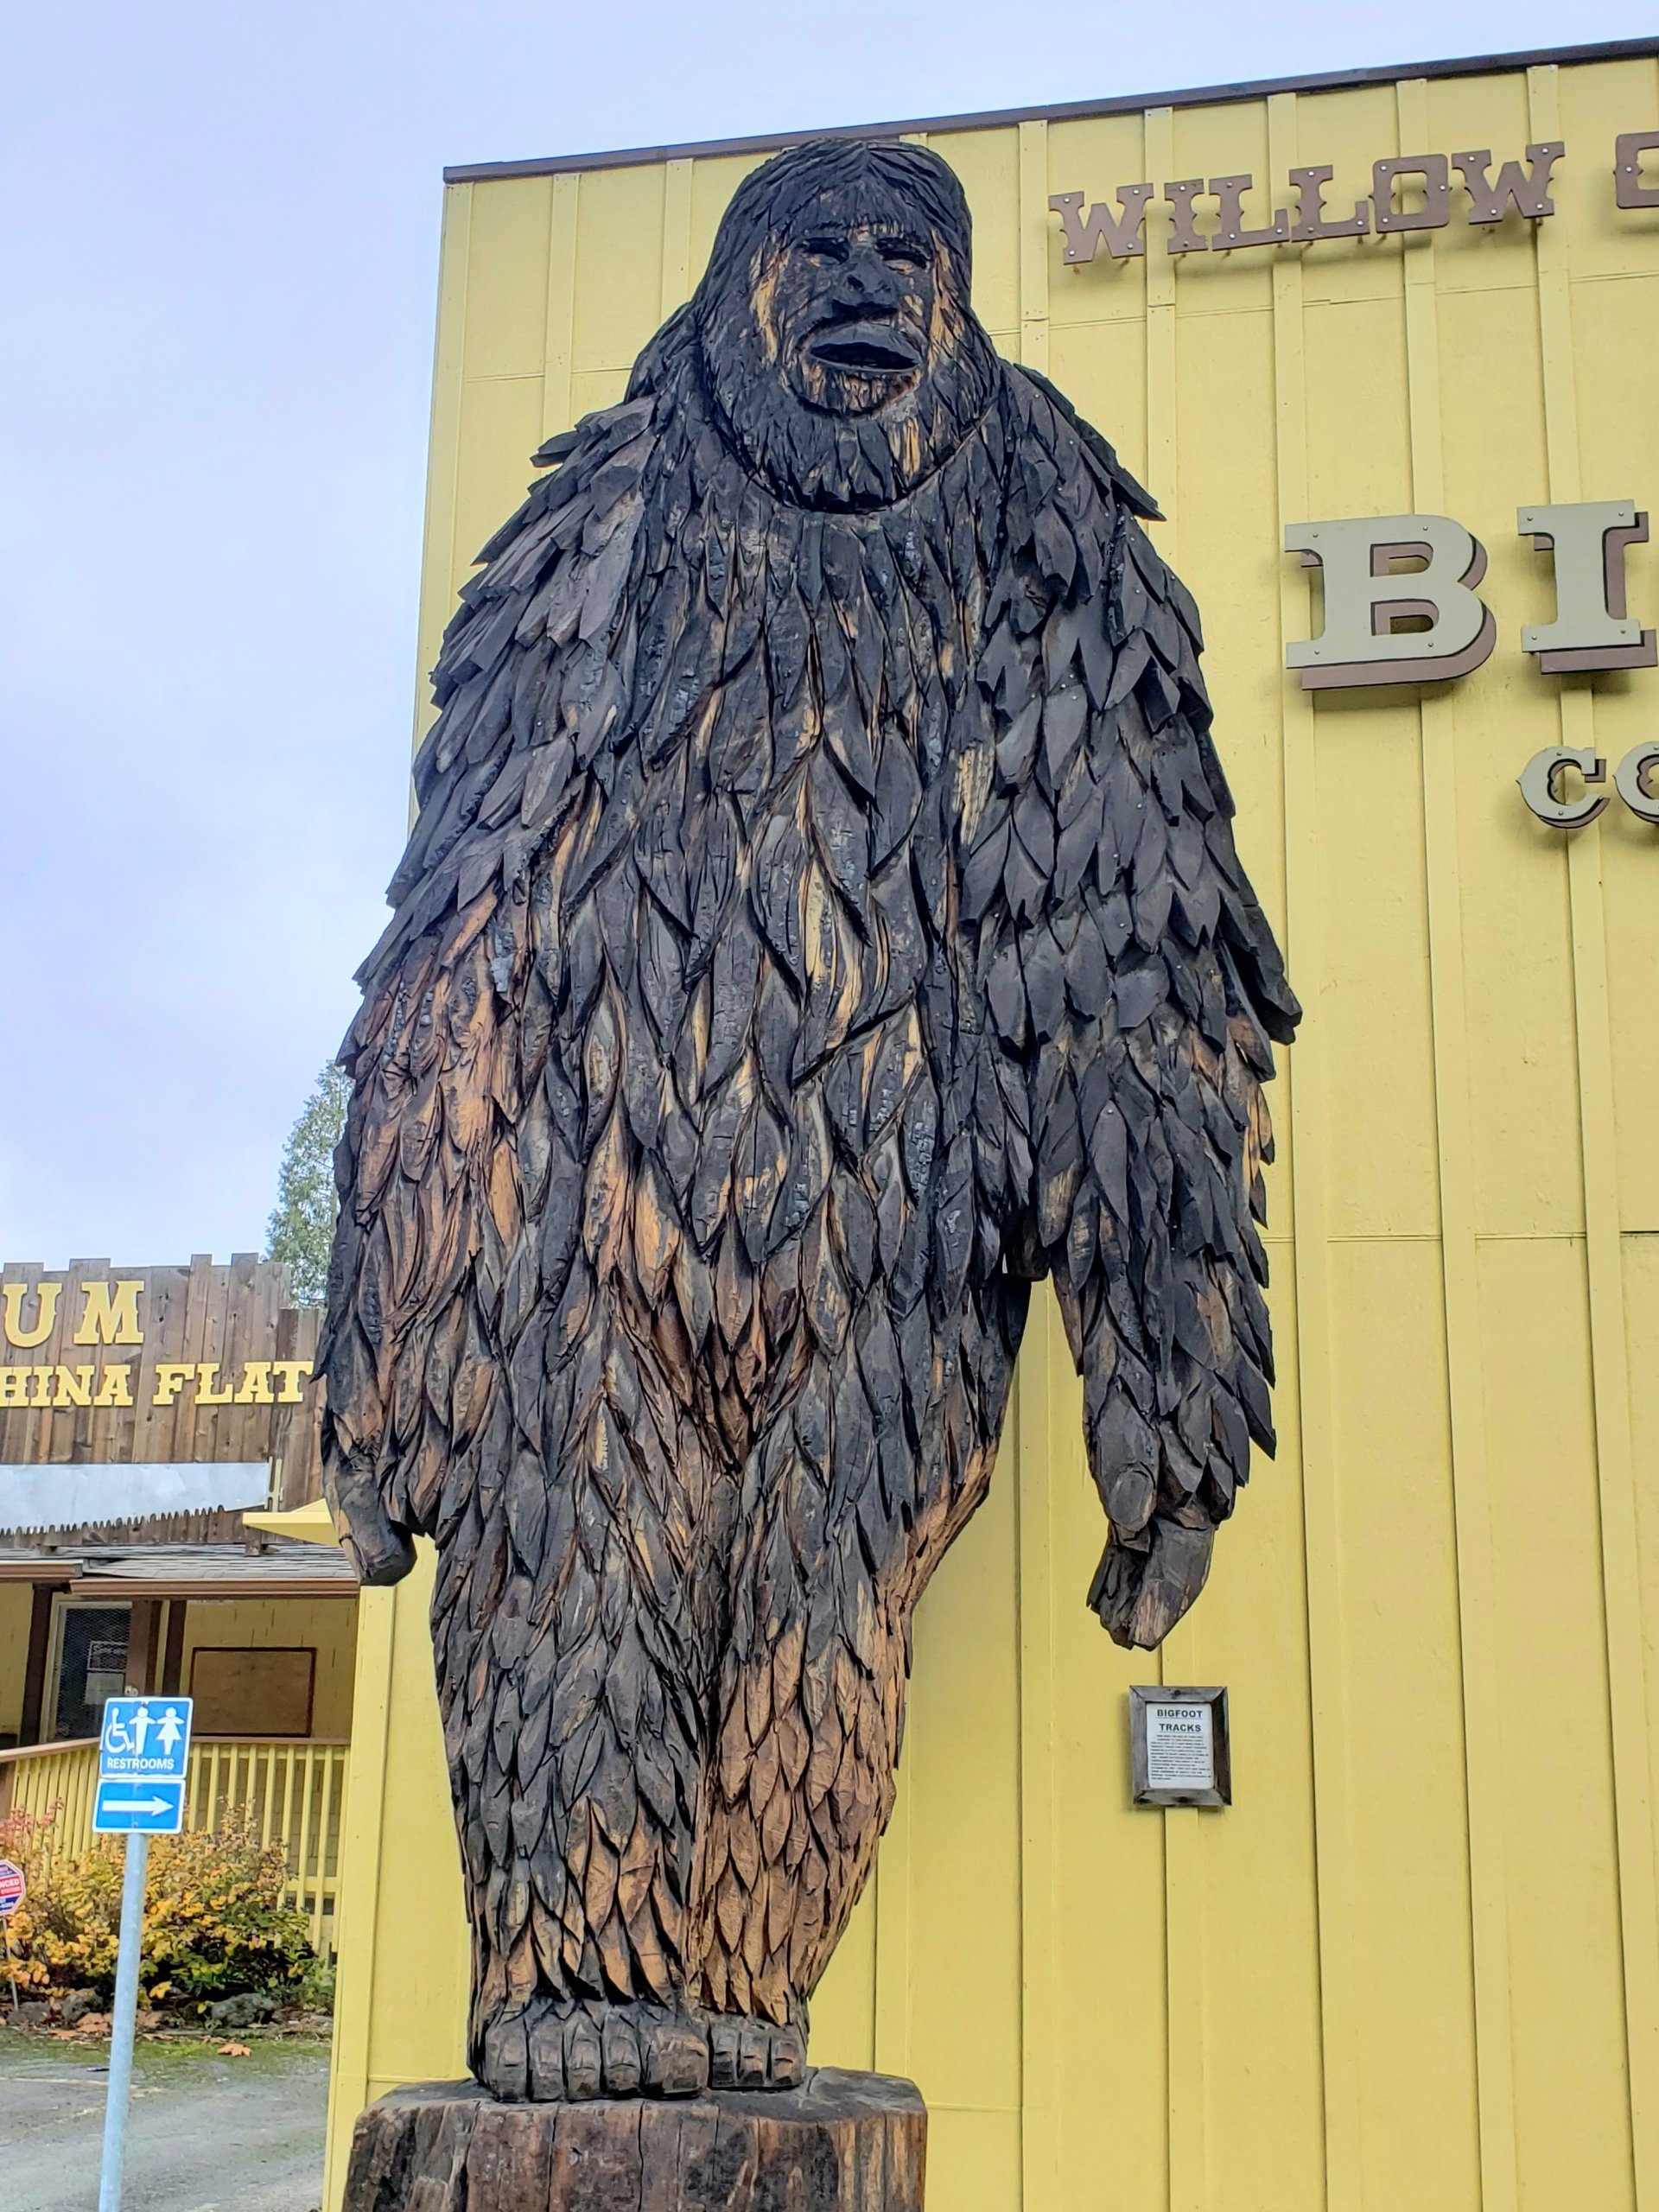 The Bigfoot statue in front of the Willow Creek Bigfoot Museum on Feb 6. | Photo by Sophia Escudero